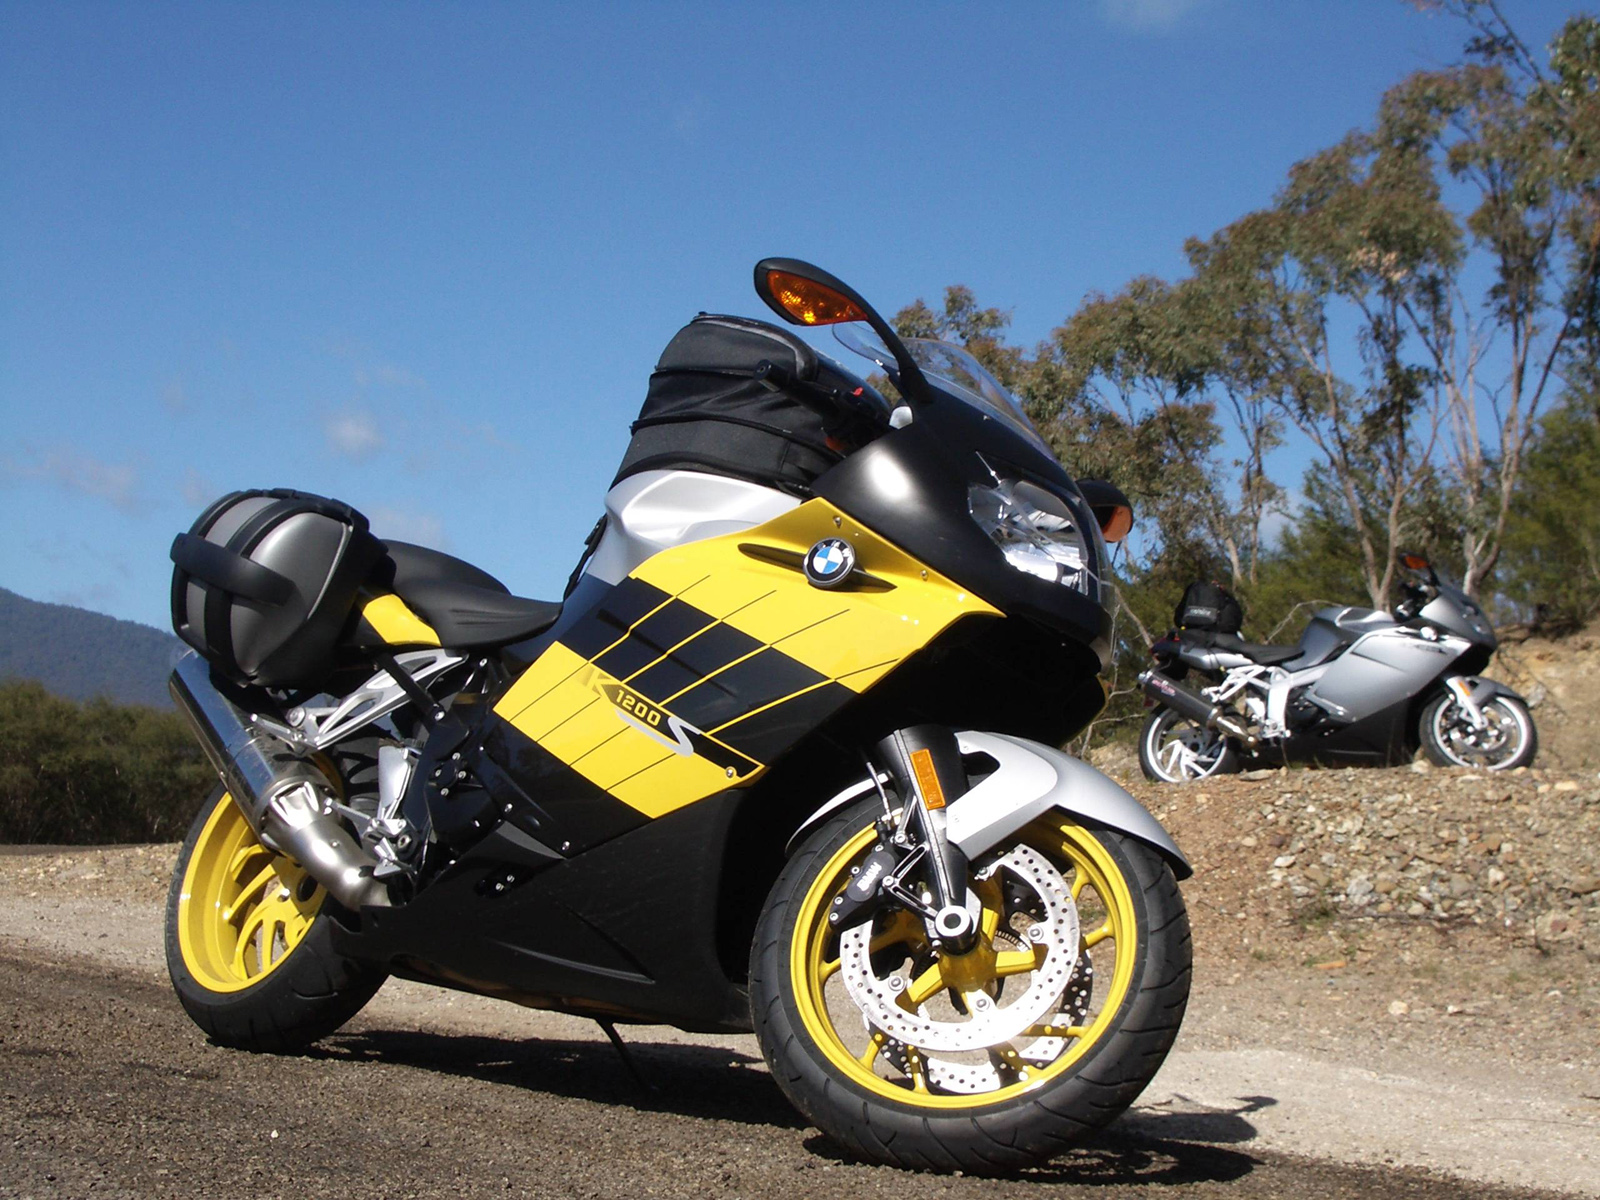 bmw k1200s photos photogallery with 11 pics. Black Bedroom Furniture Sets. Home Design Ideas